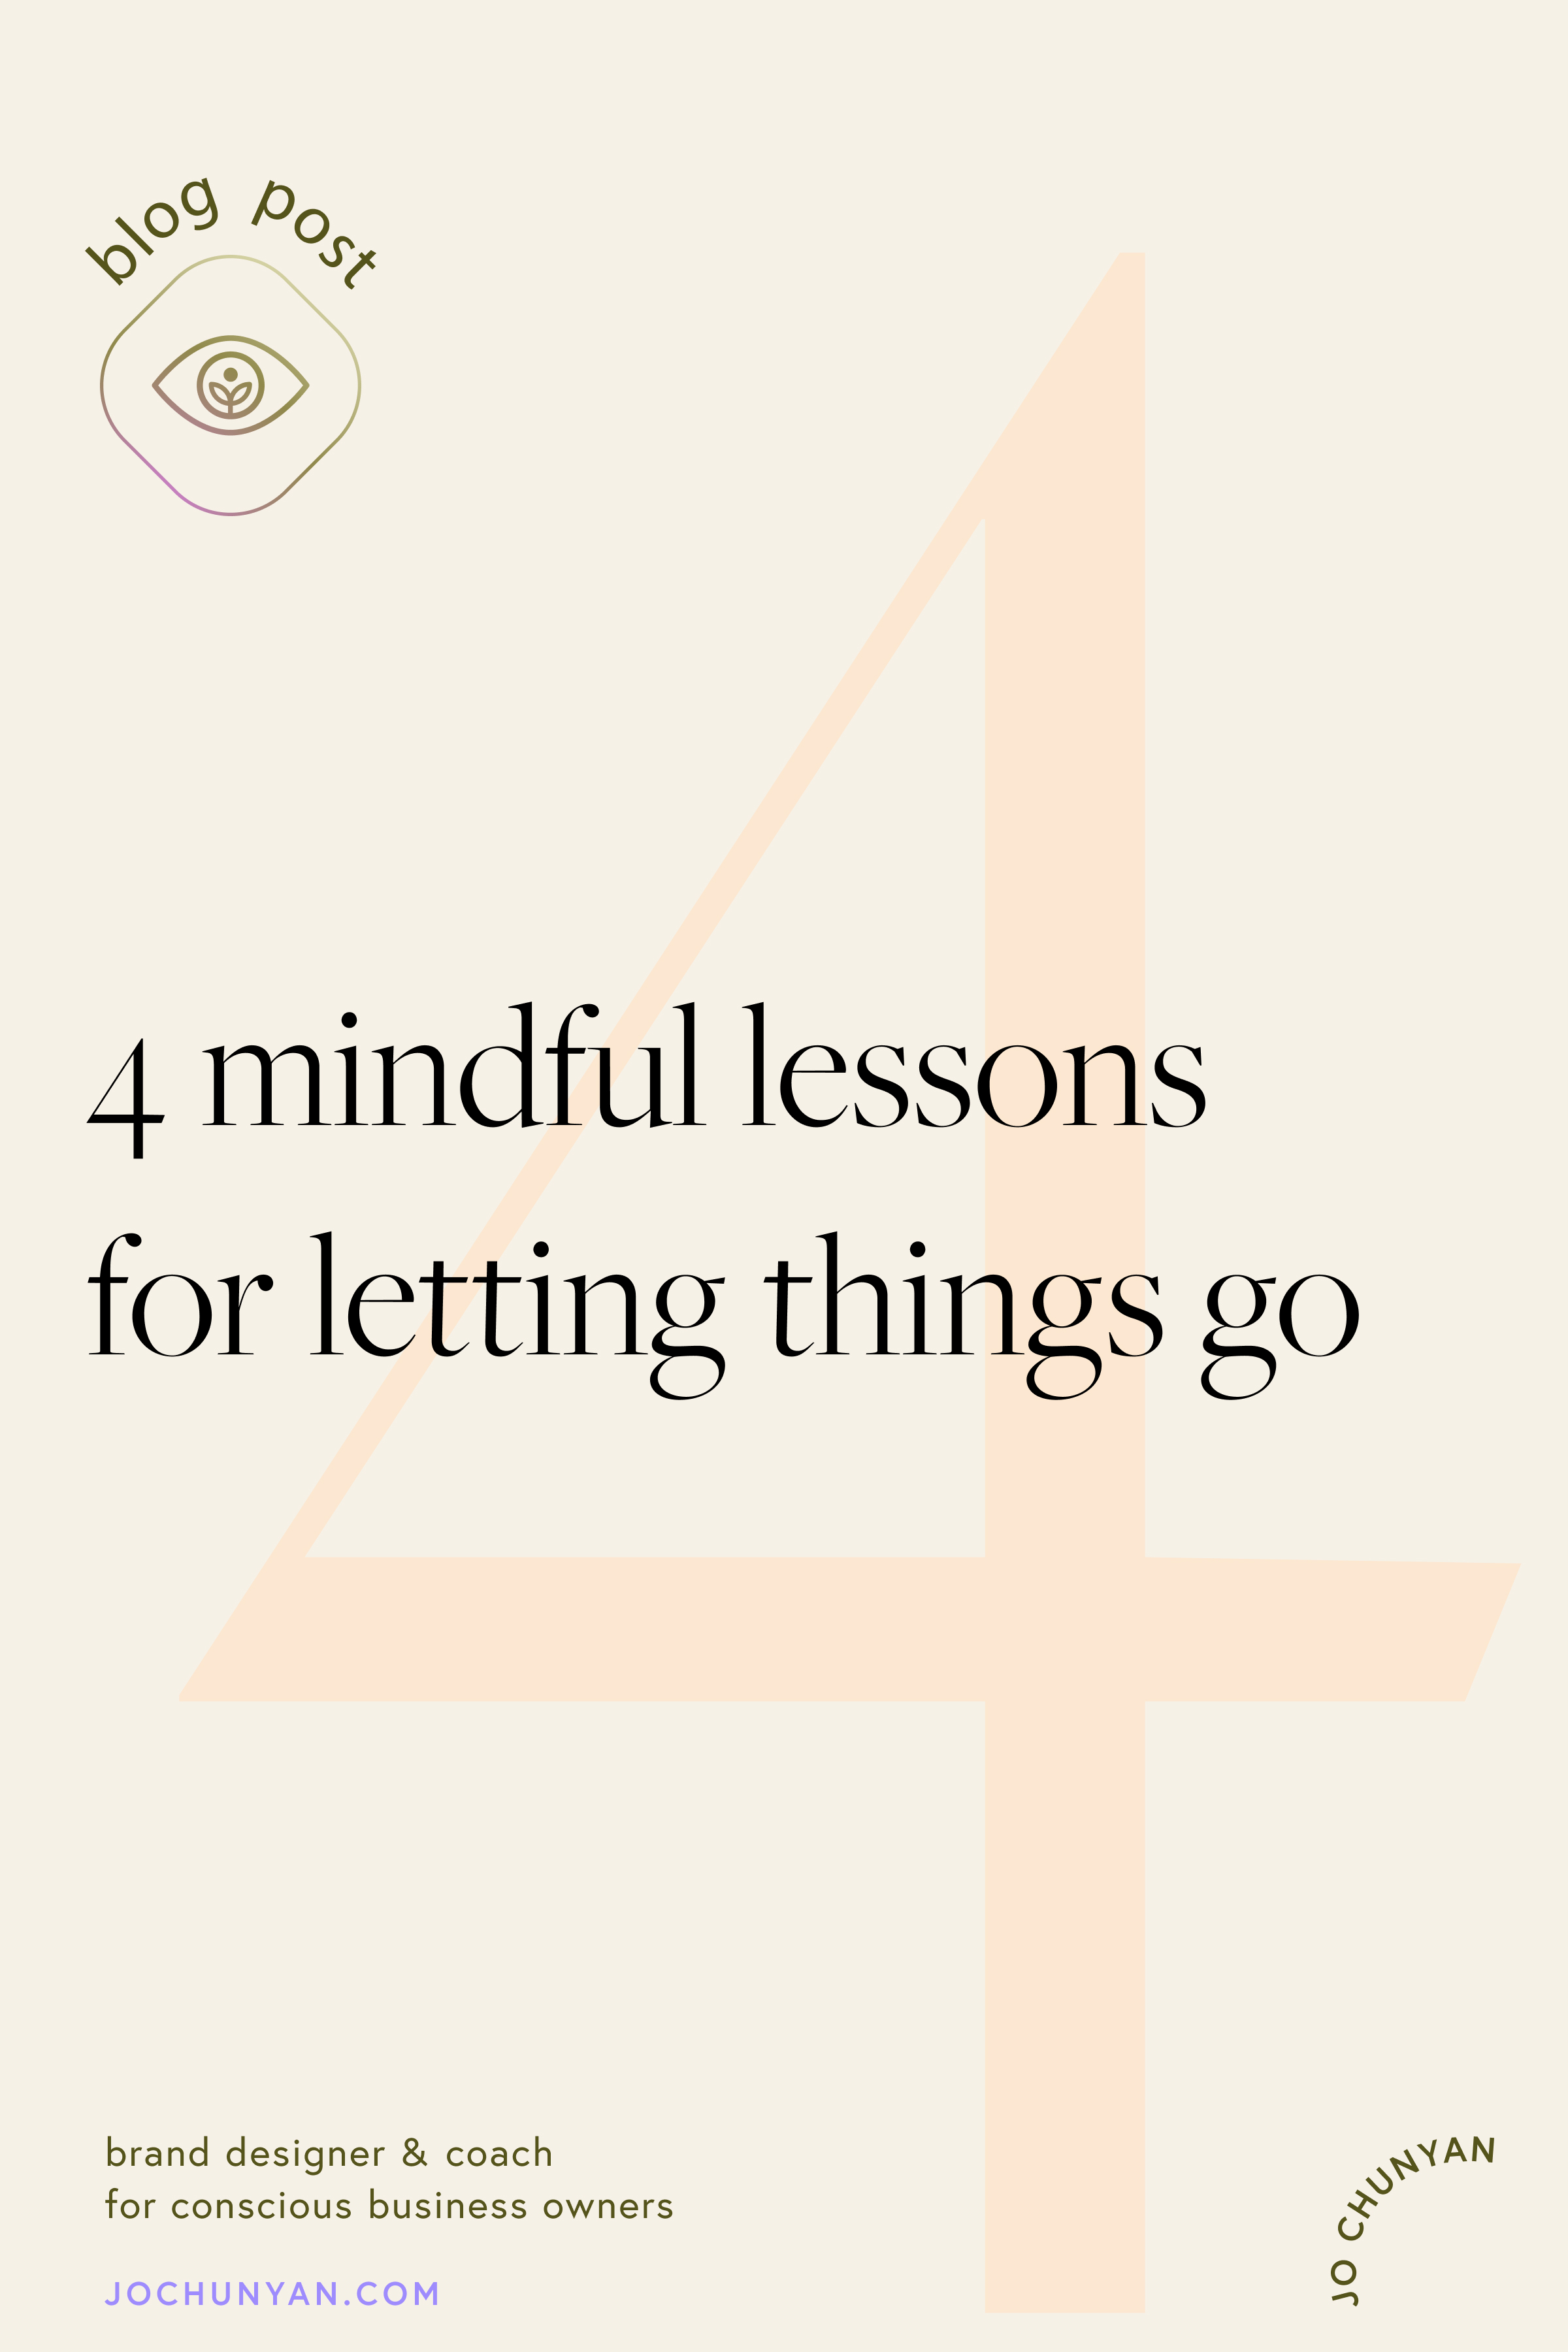 4 mindful lessons for letting things go